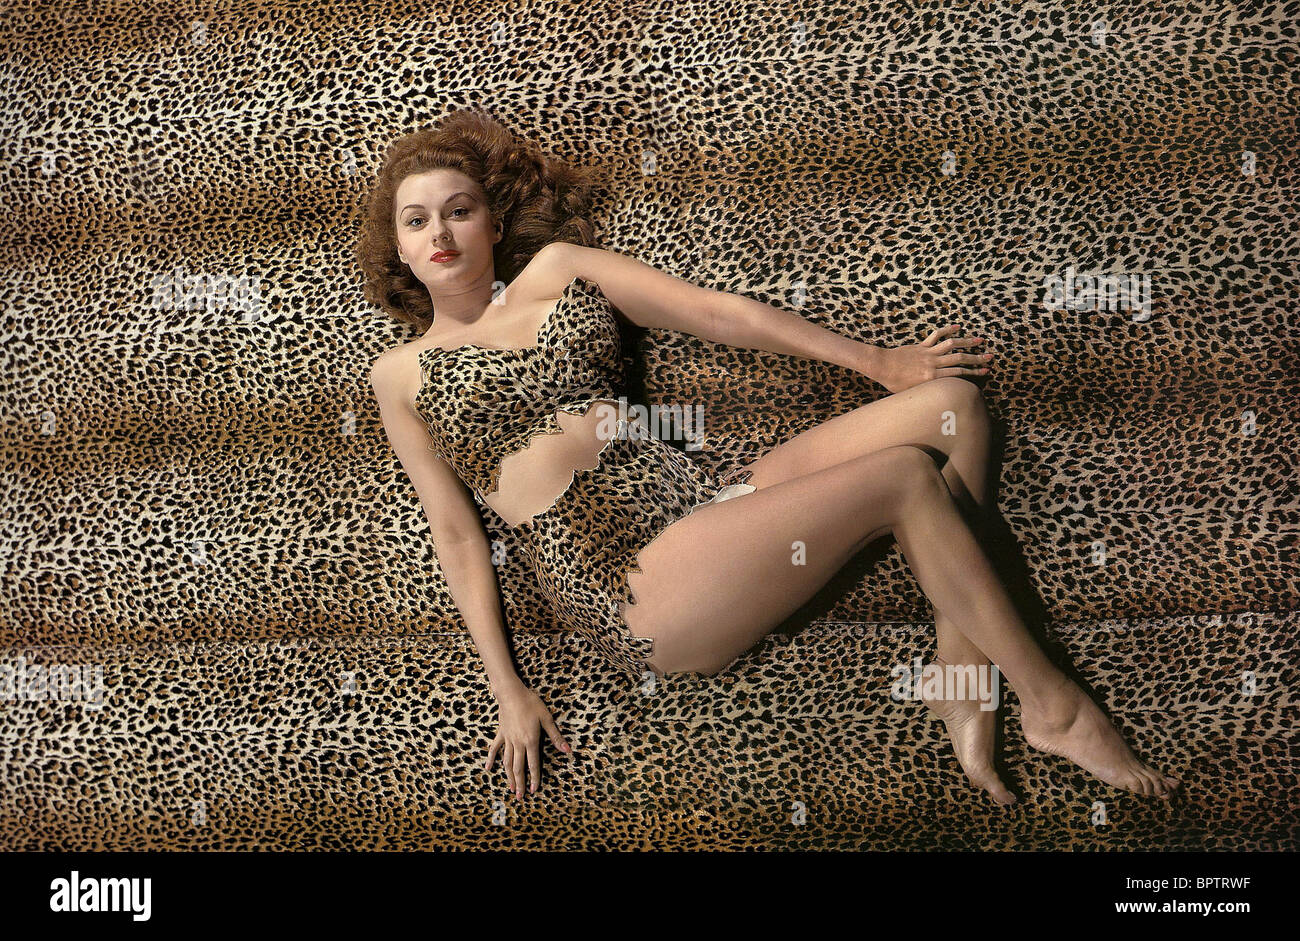 RHONDA FLEMING ACTRICE (1944) Photo Stock